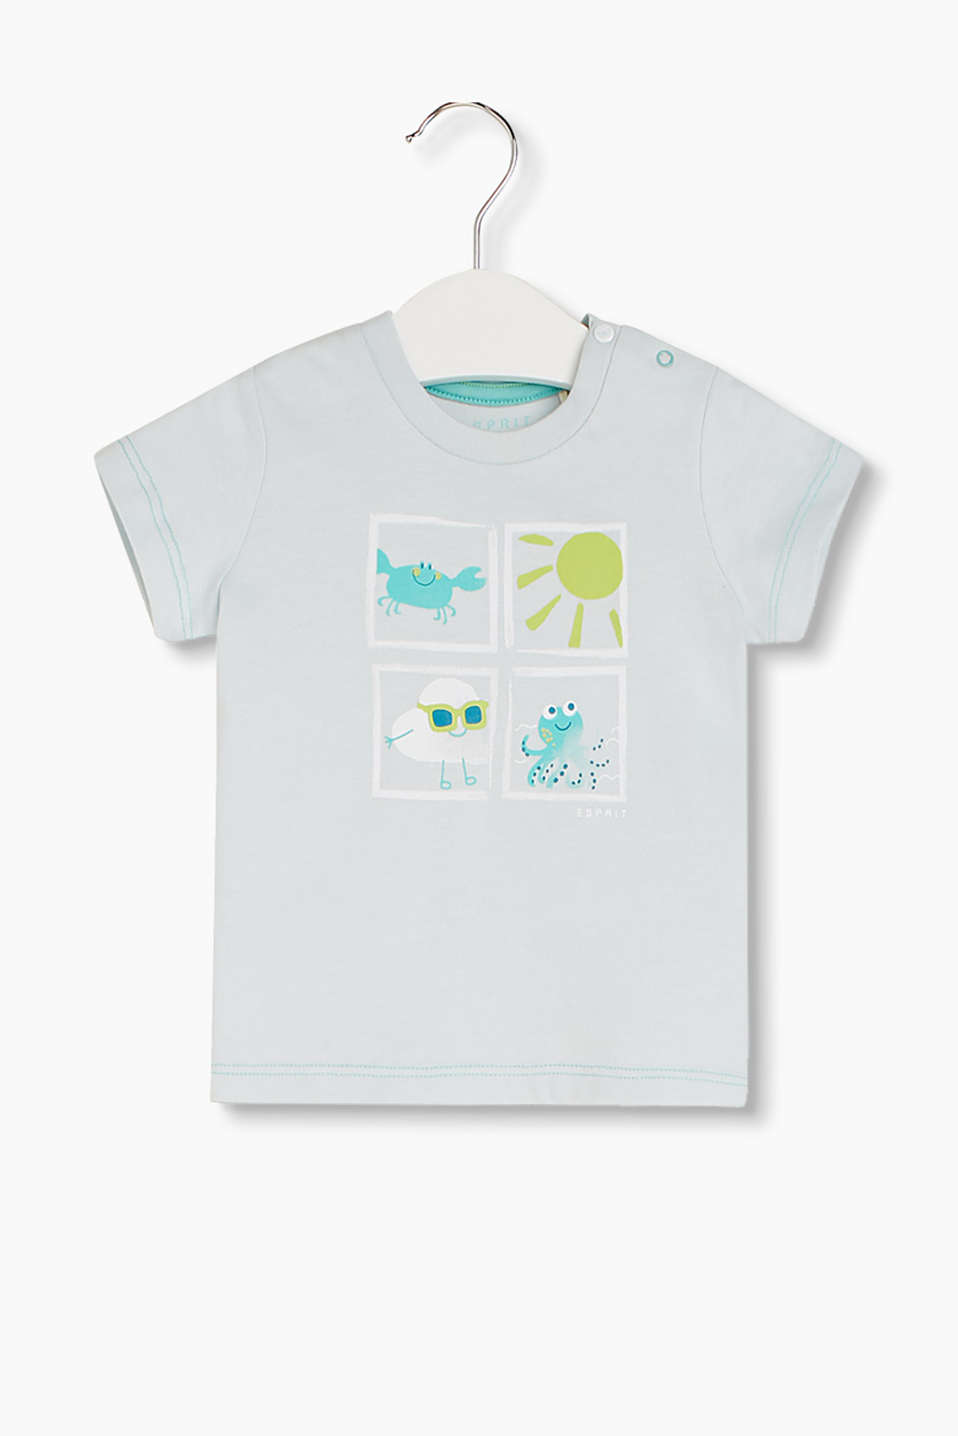 Soft printed T-shirt with contrasting stitching and press studs in the shoulder, organic cotton